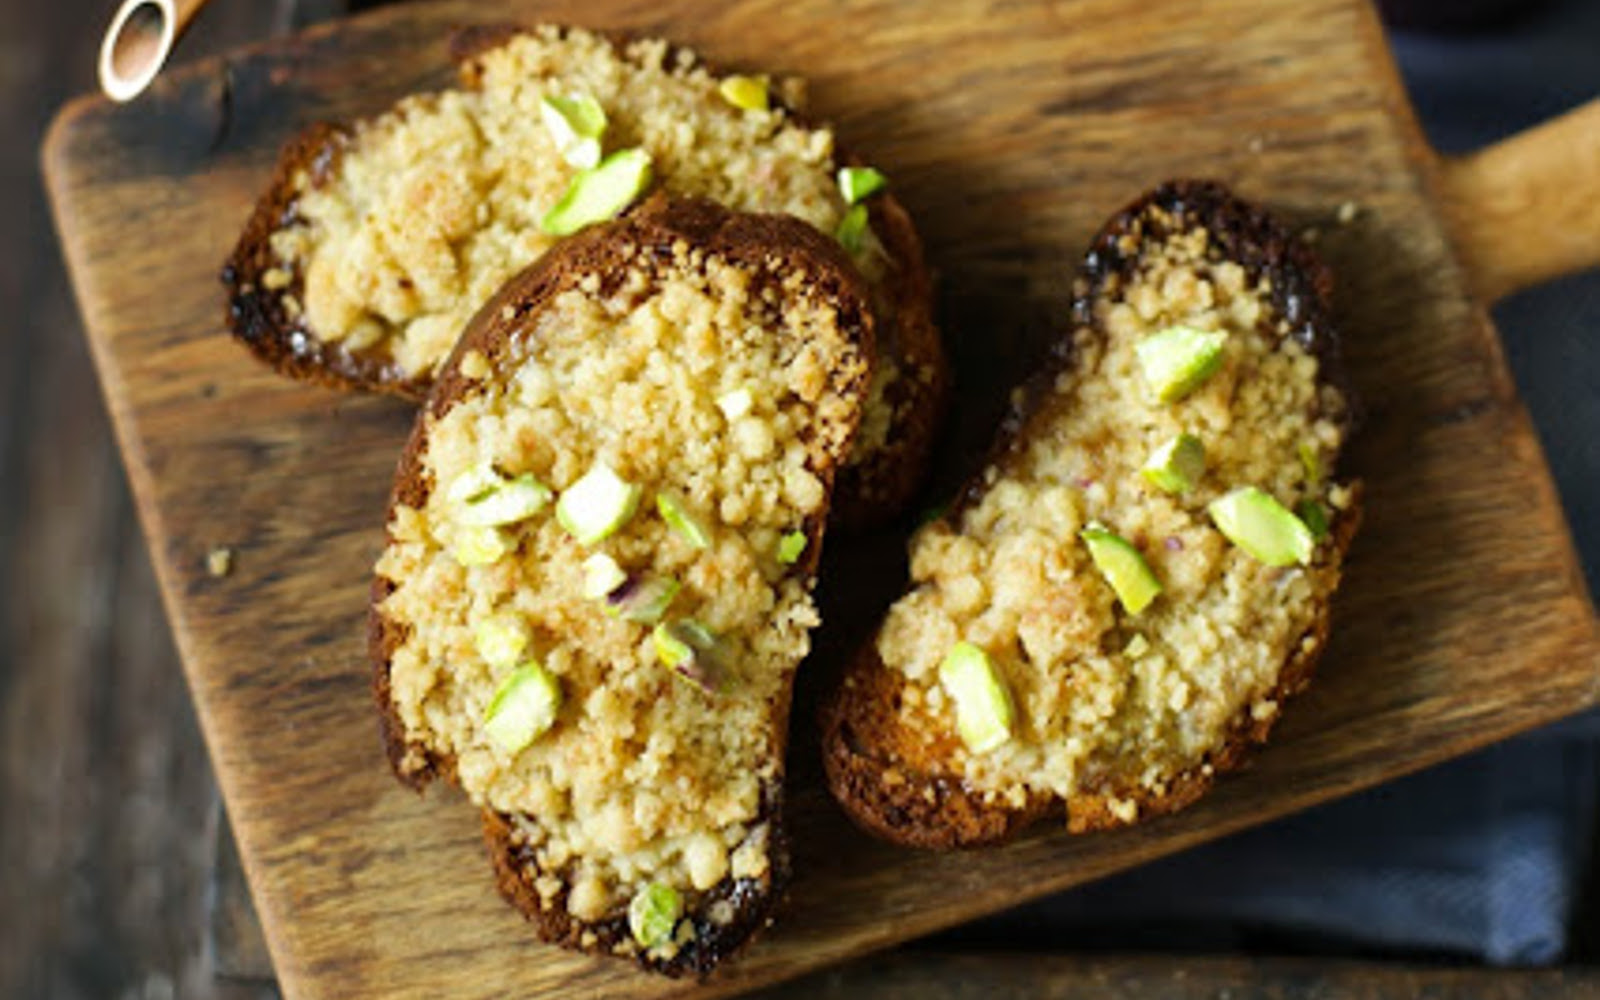 Toasts With Pistachio Cream and Streusel